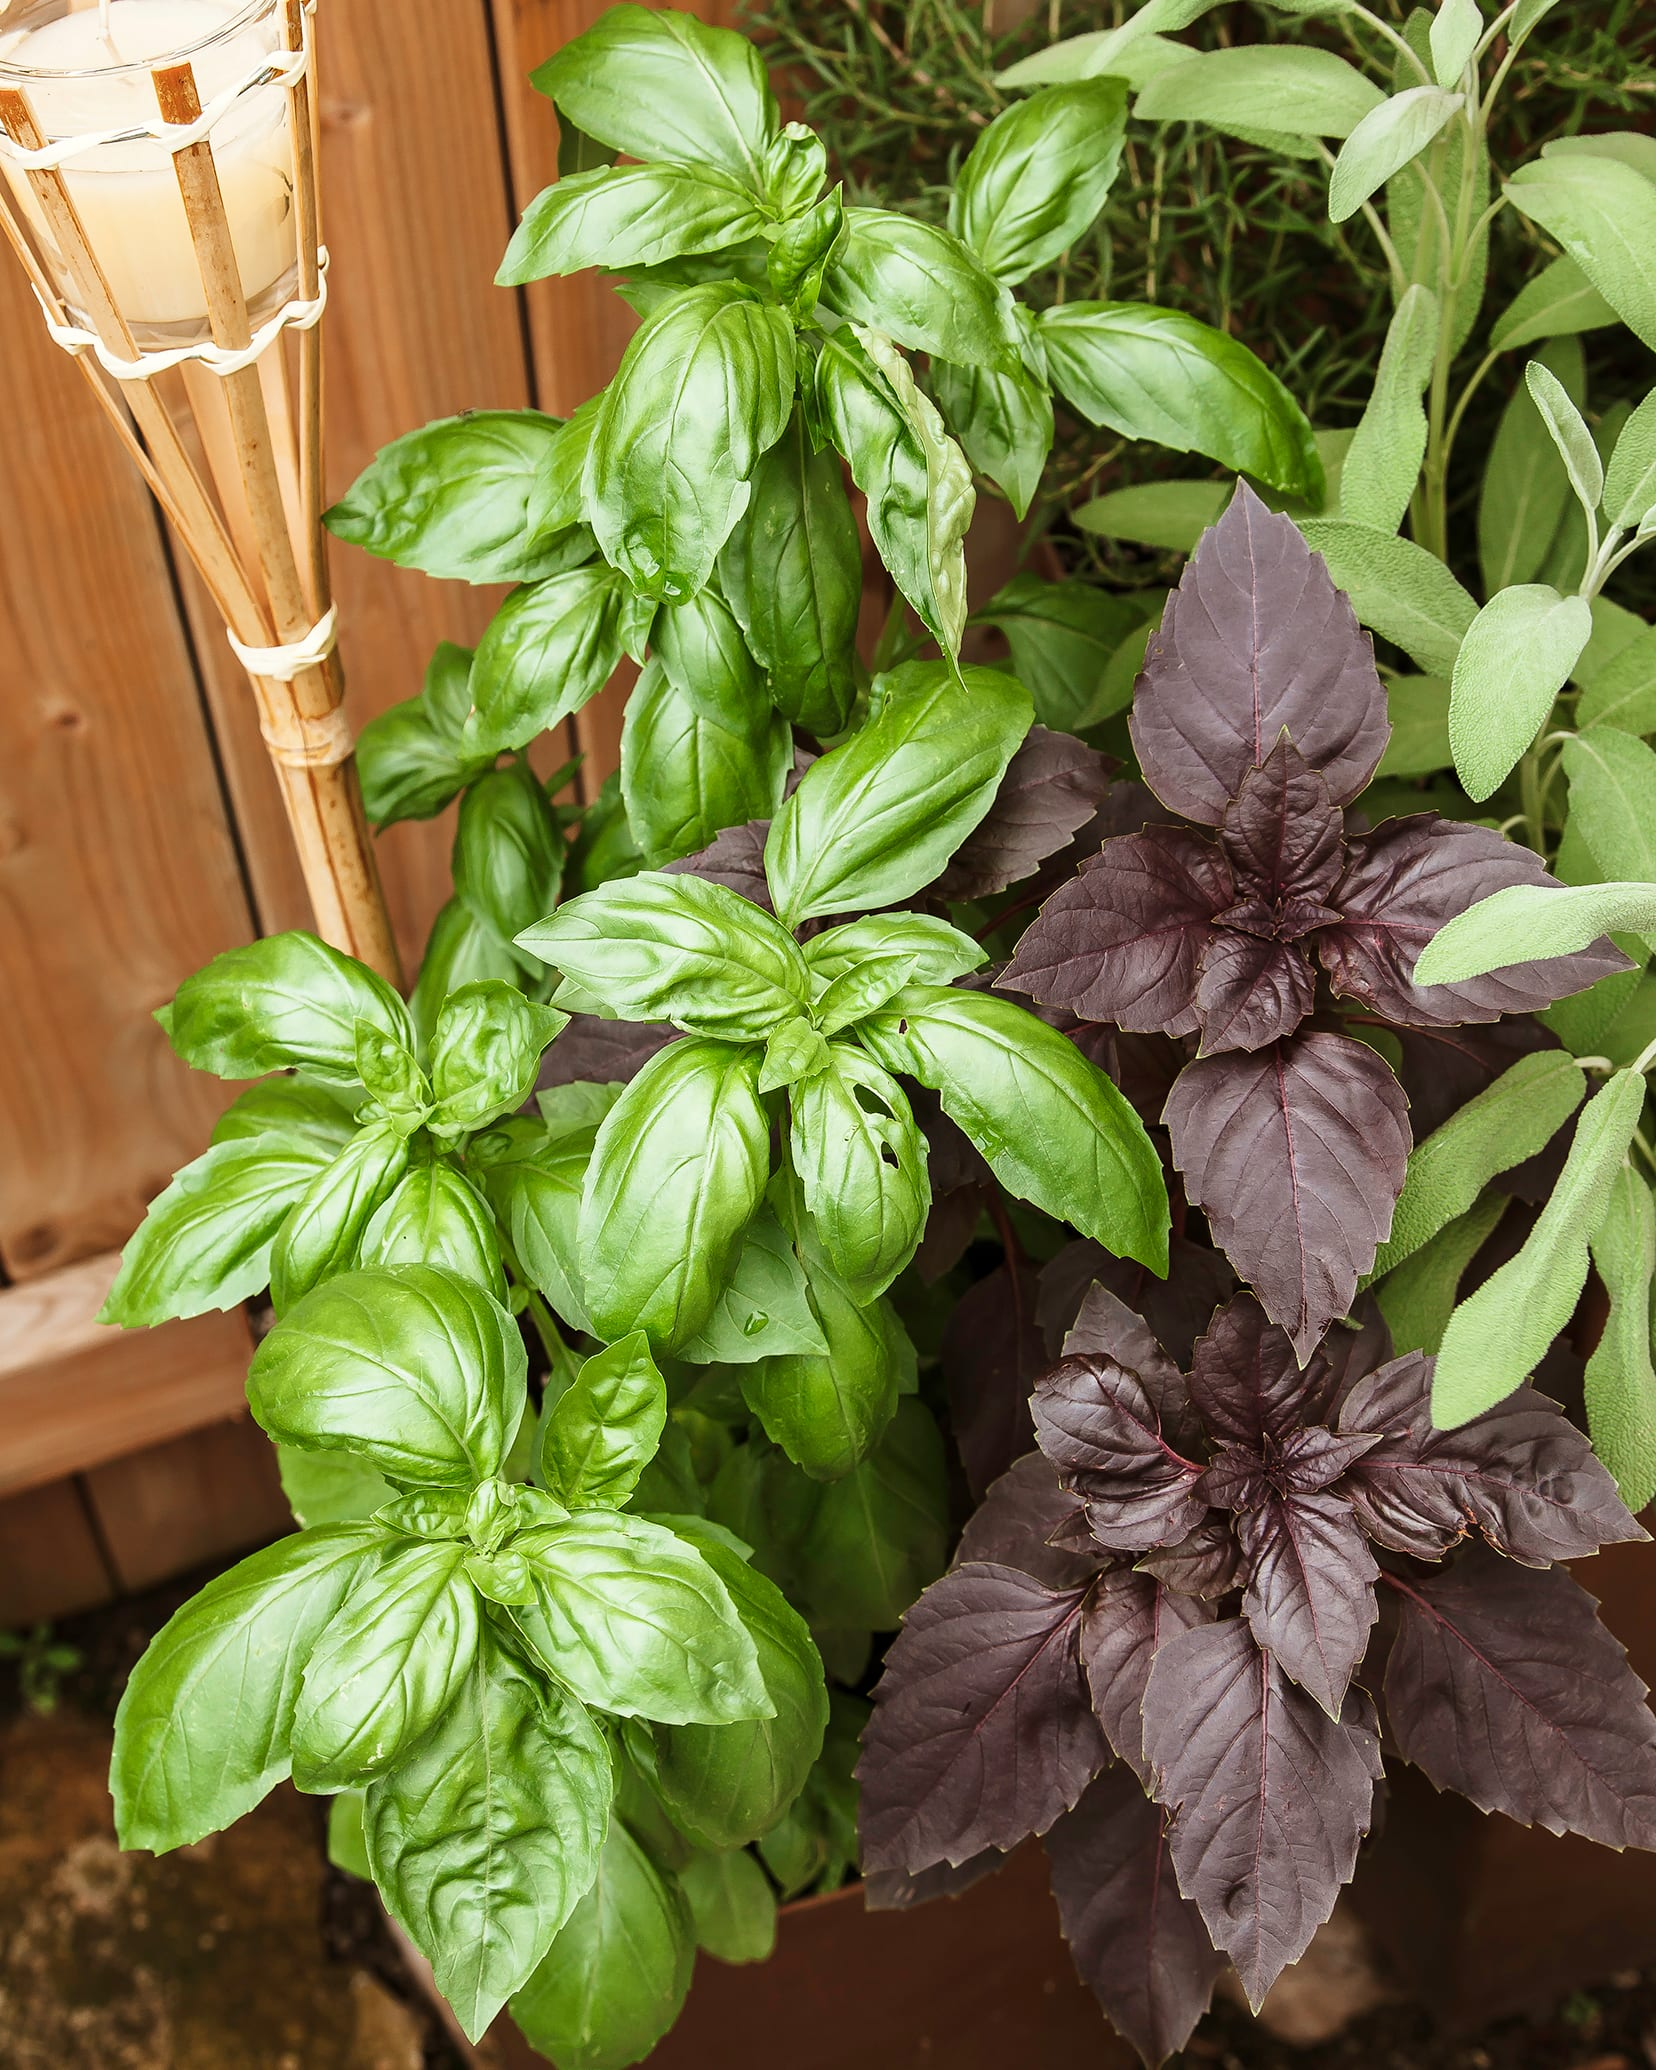 A 3/4 angle shot of two basil plants in a pot, photographed outside. One is a bright green basil and the other is a deep burgundy variety of basil.